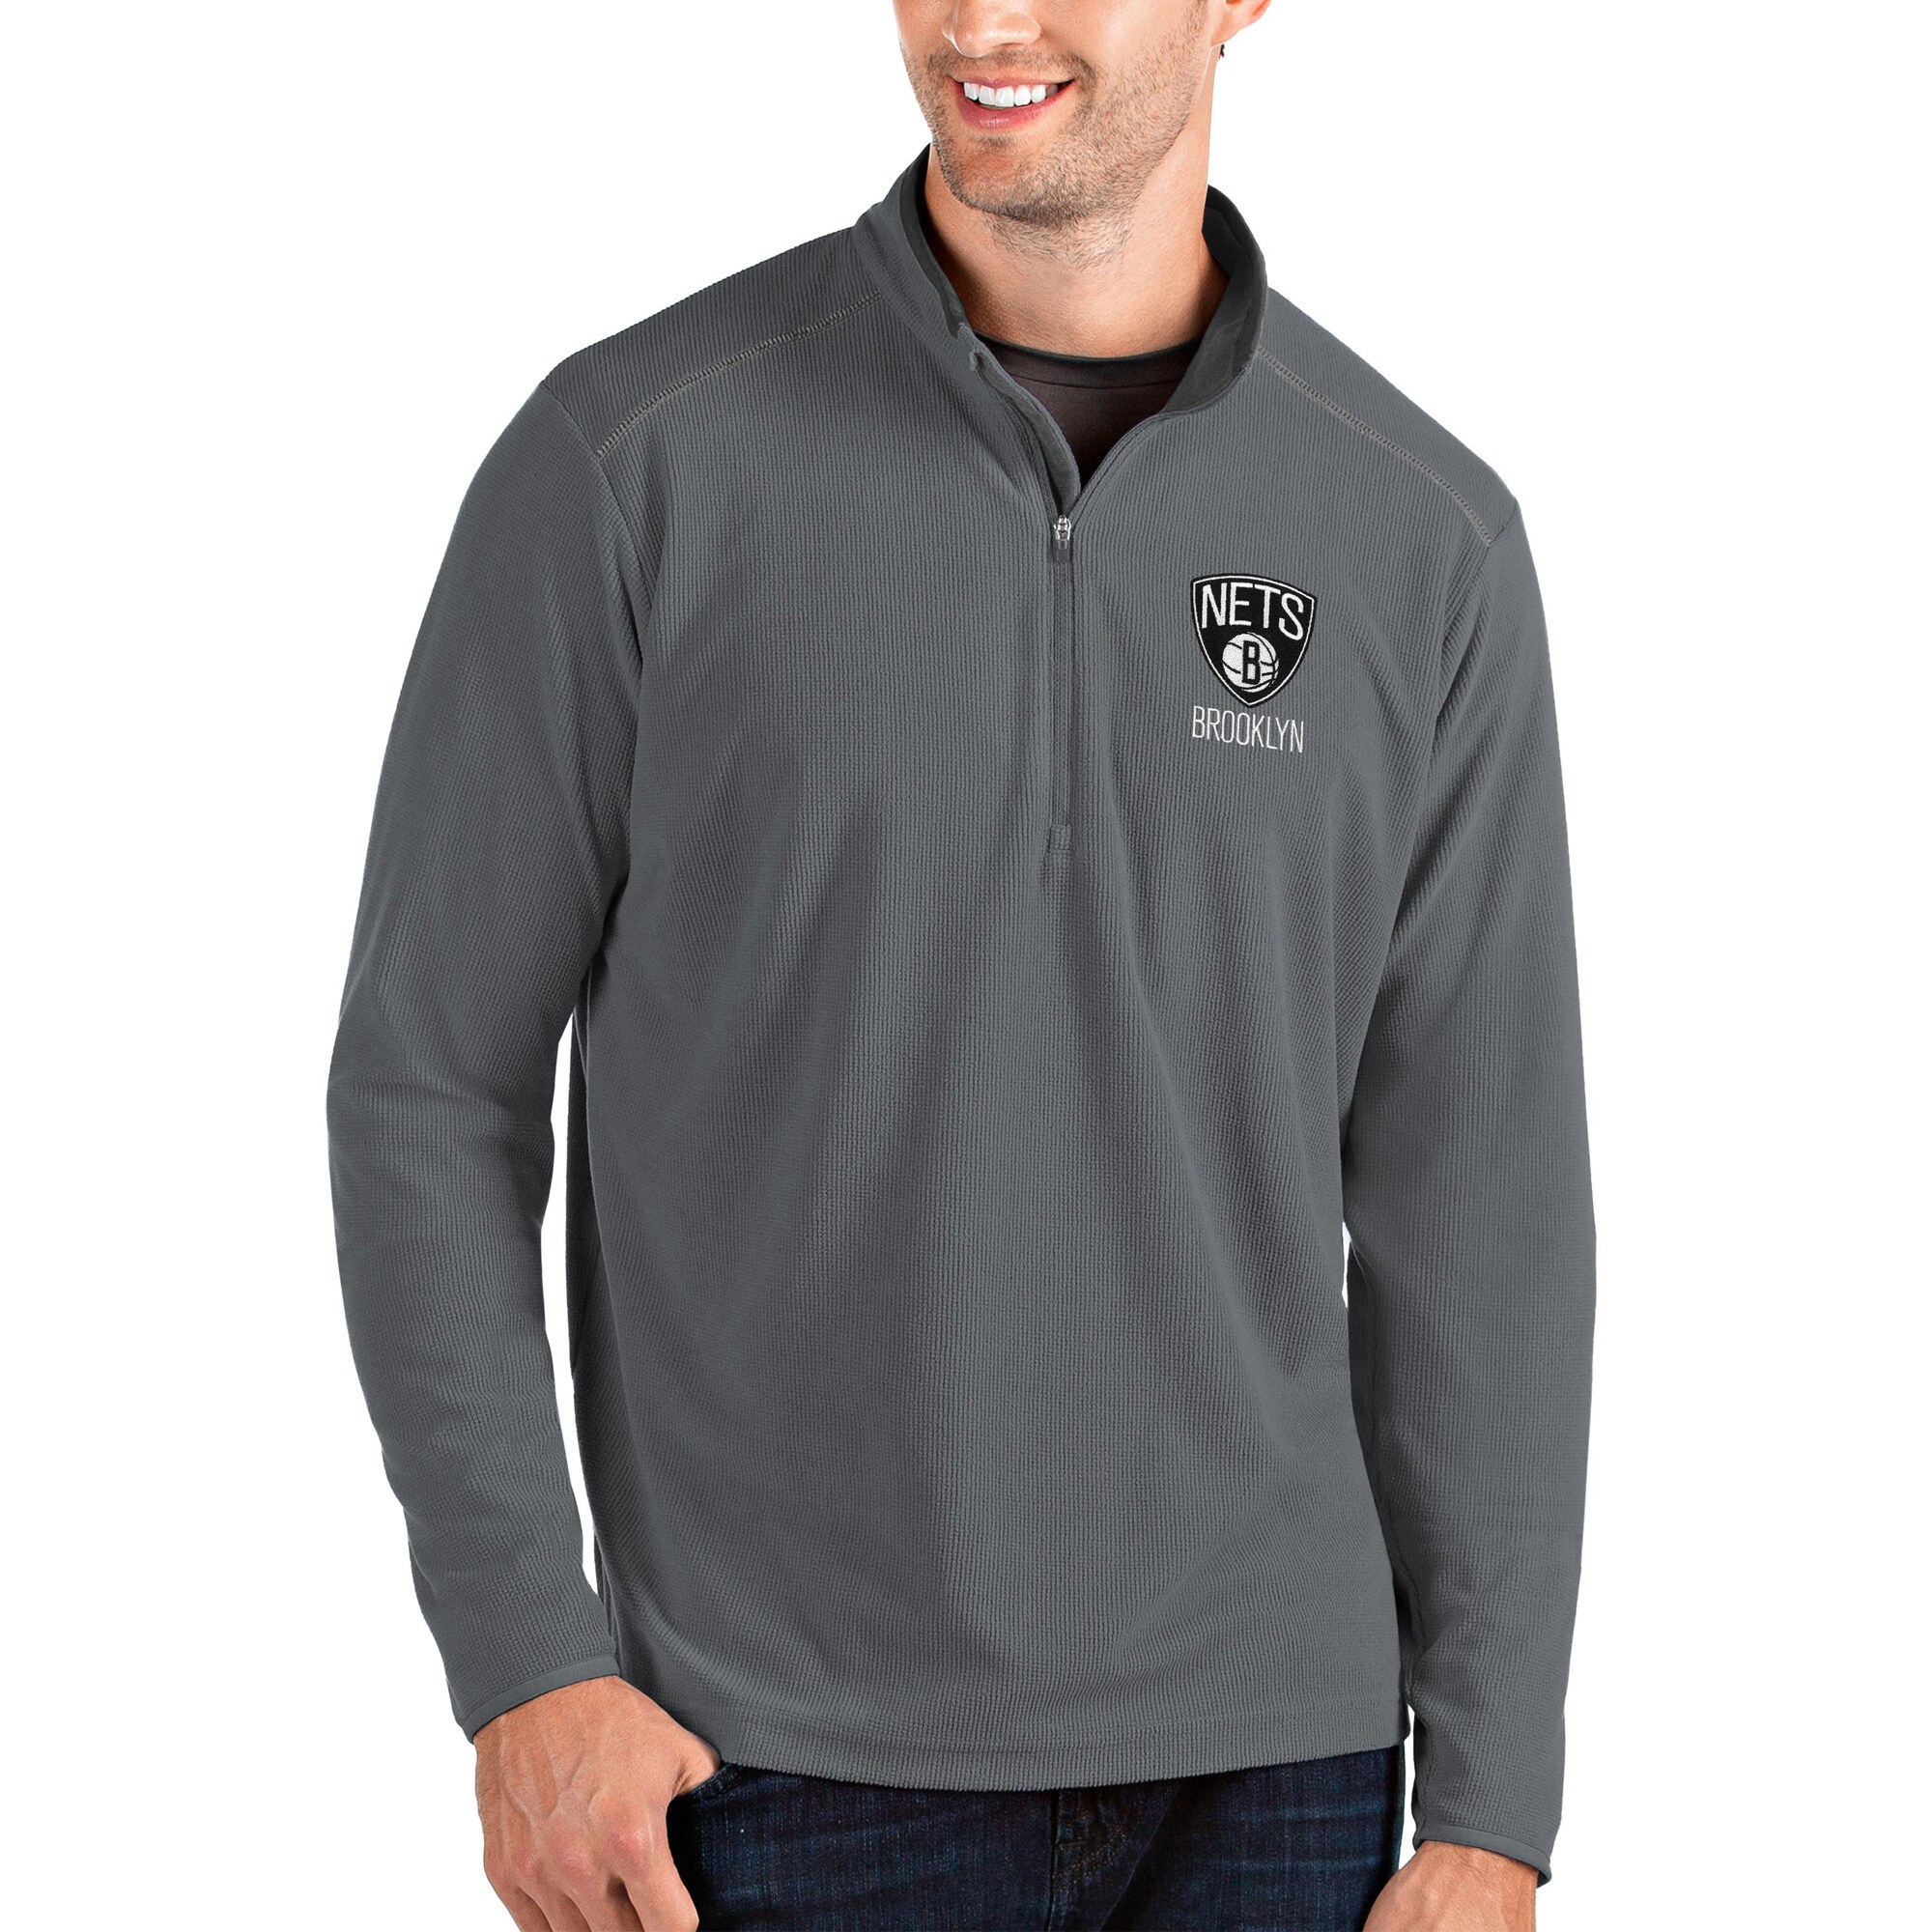 Brooklyn Nets Antigua Glacier Quarter-Zip Pullover Jacket - Charcoal/Gray